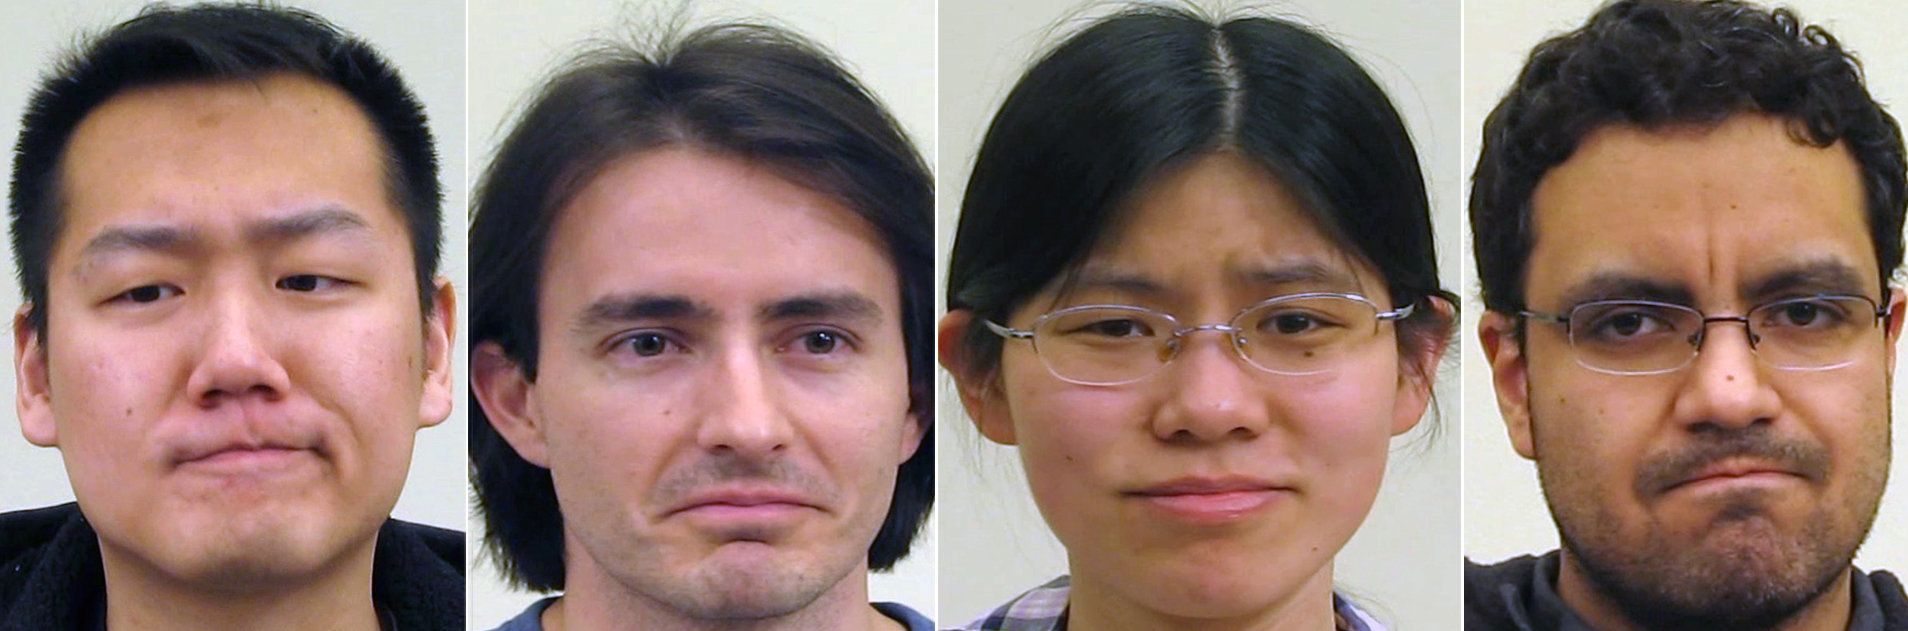 Researchers at The Ohio State University have identified a single, universal facial expression that is interpreted across many cultures as the embodiment of negative emotion.